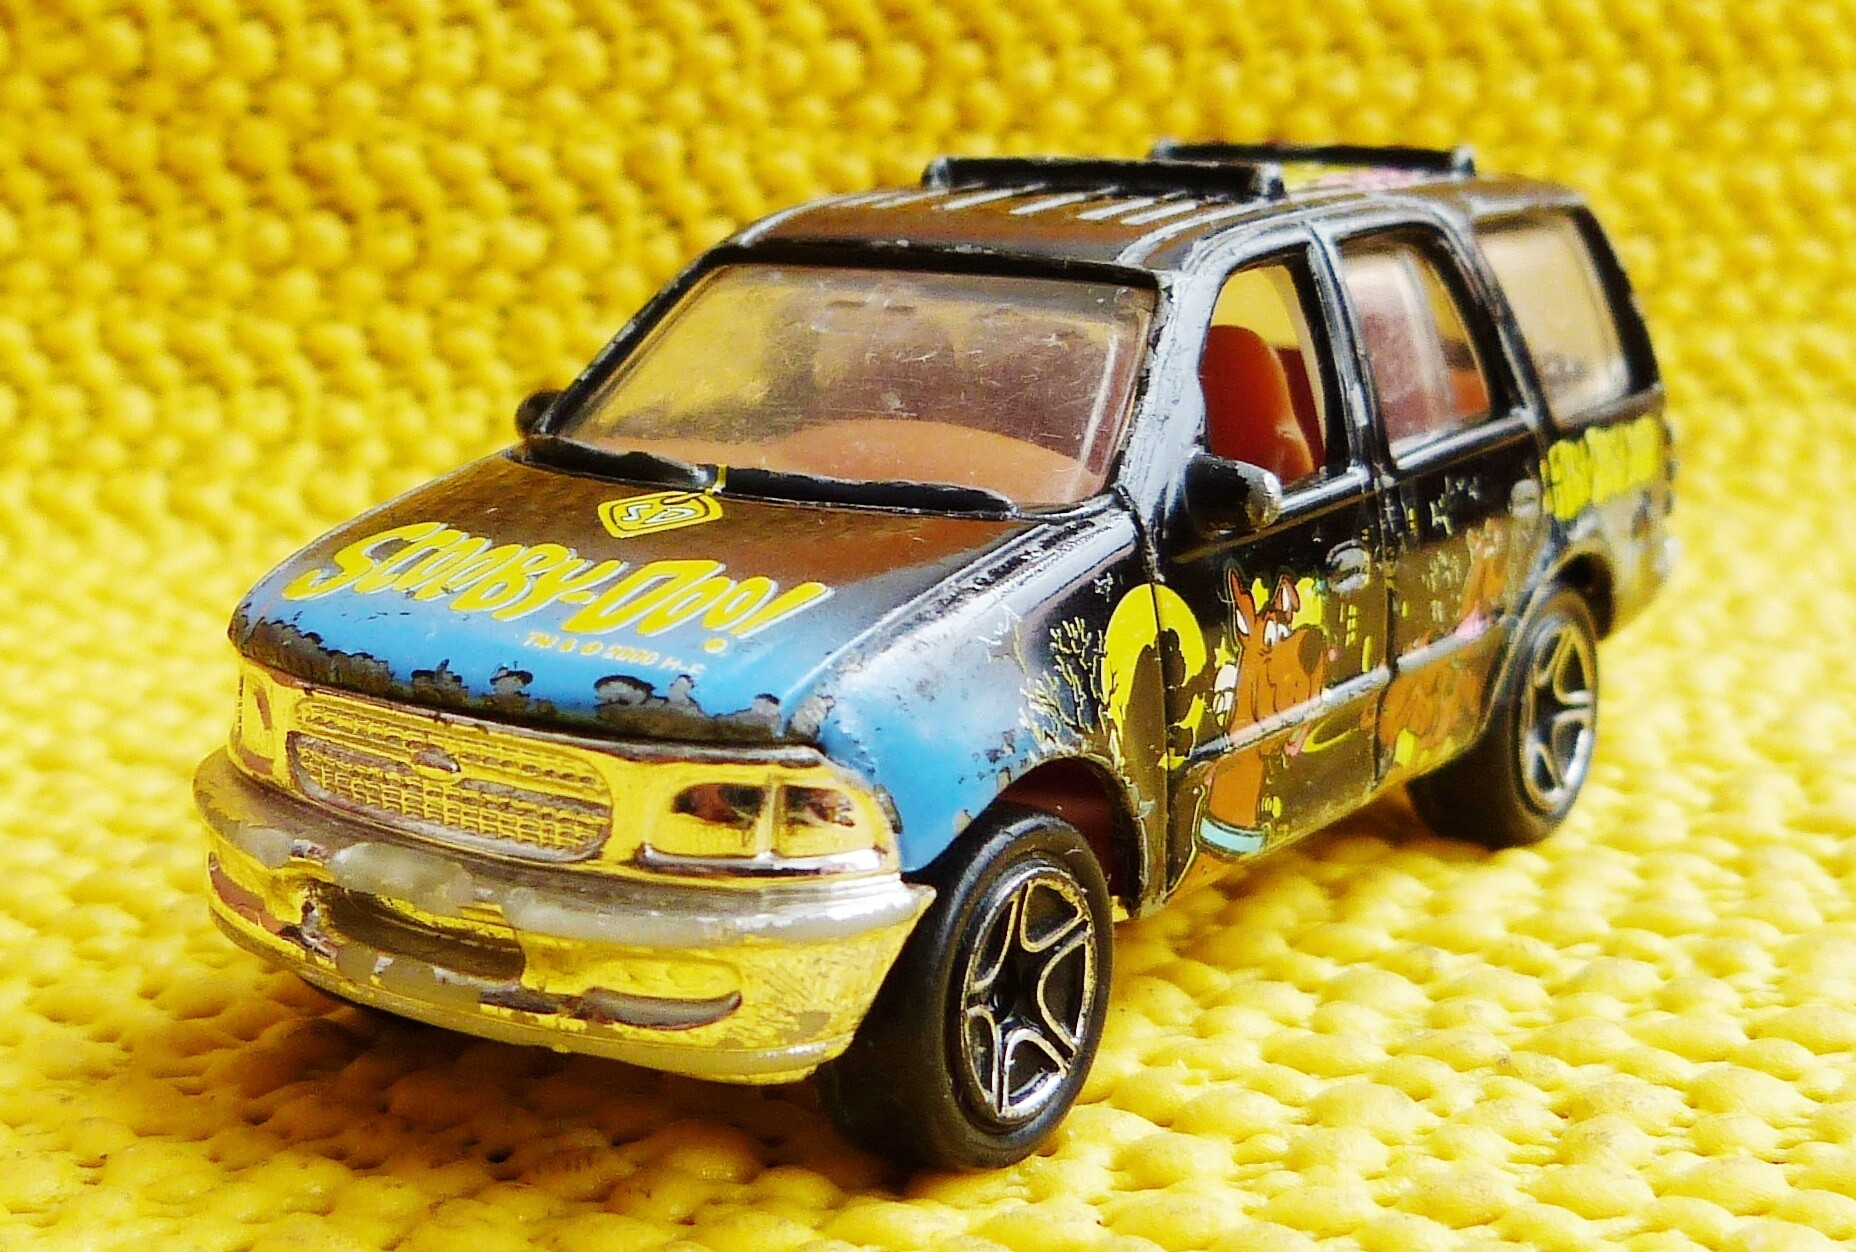 Ford Expedition/MBX ok